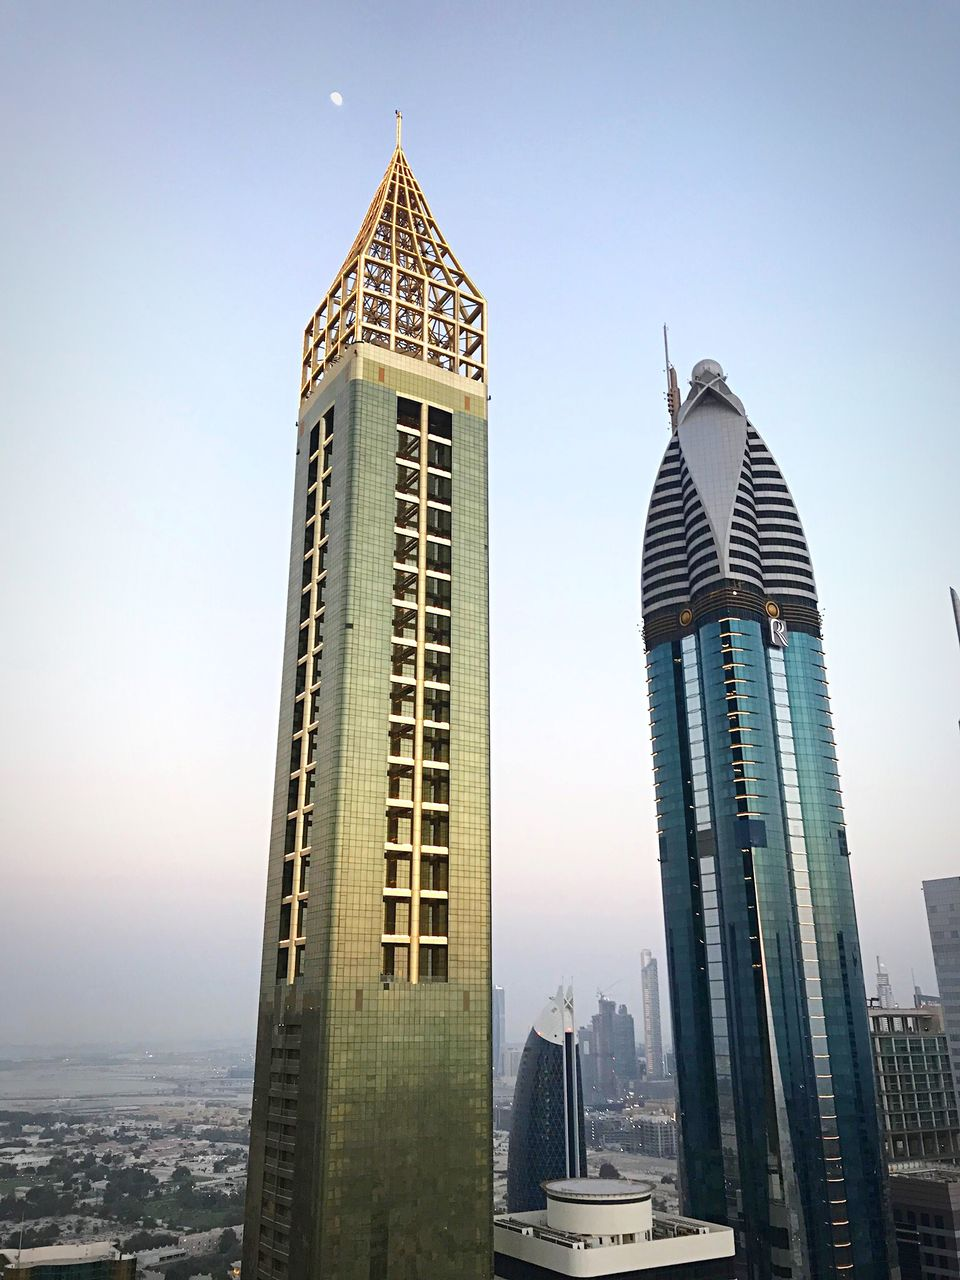 building exterior, built structure, architecture, building, office building exterior, sky, city, skyscraper, tall - high, tower, modern, travel destinations, office, clear sky, no people, nature, low angle view, cityscape, spire, financial district, outdoors, luxury